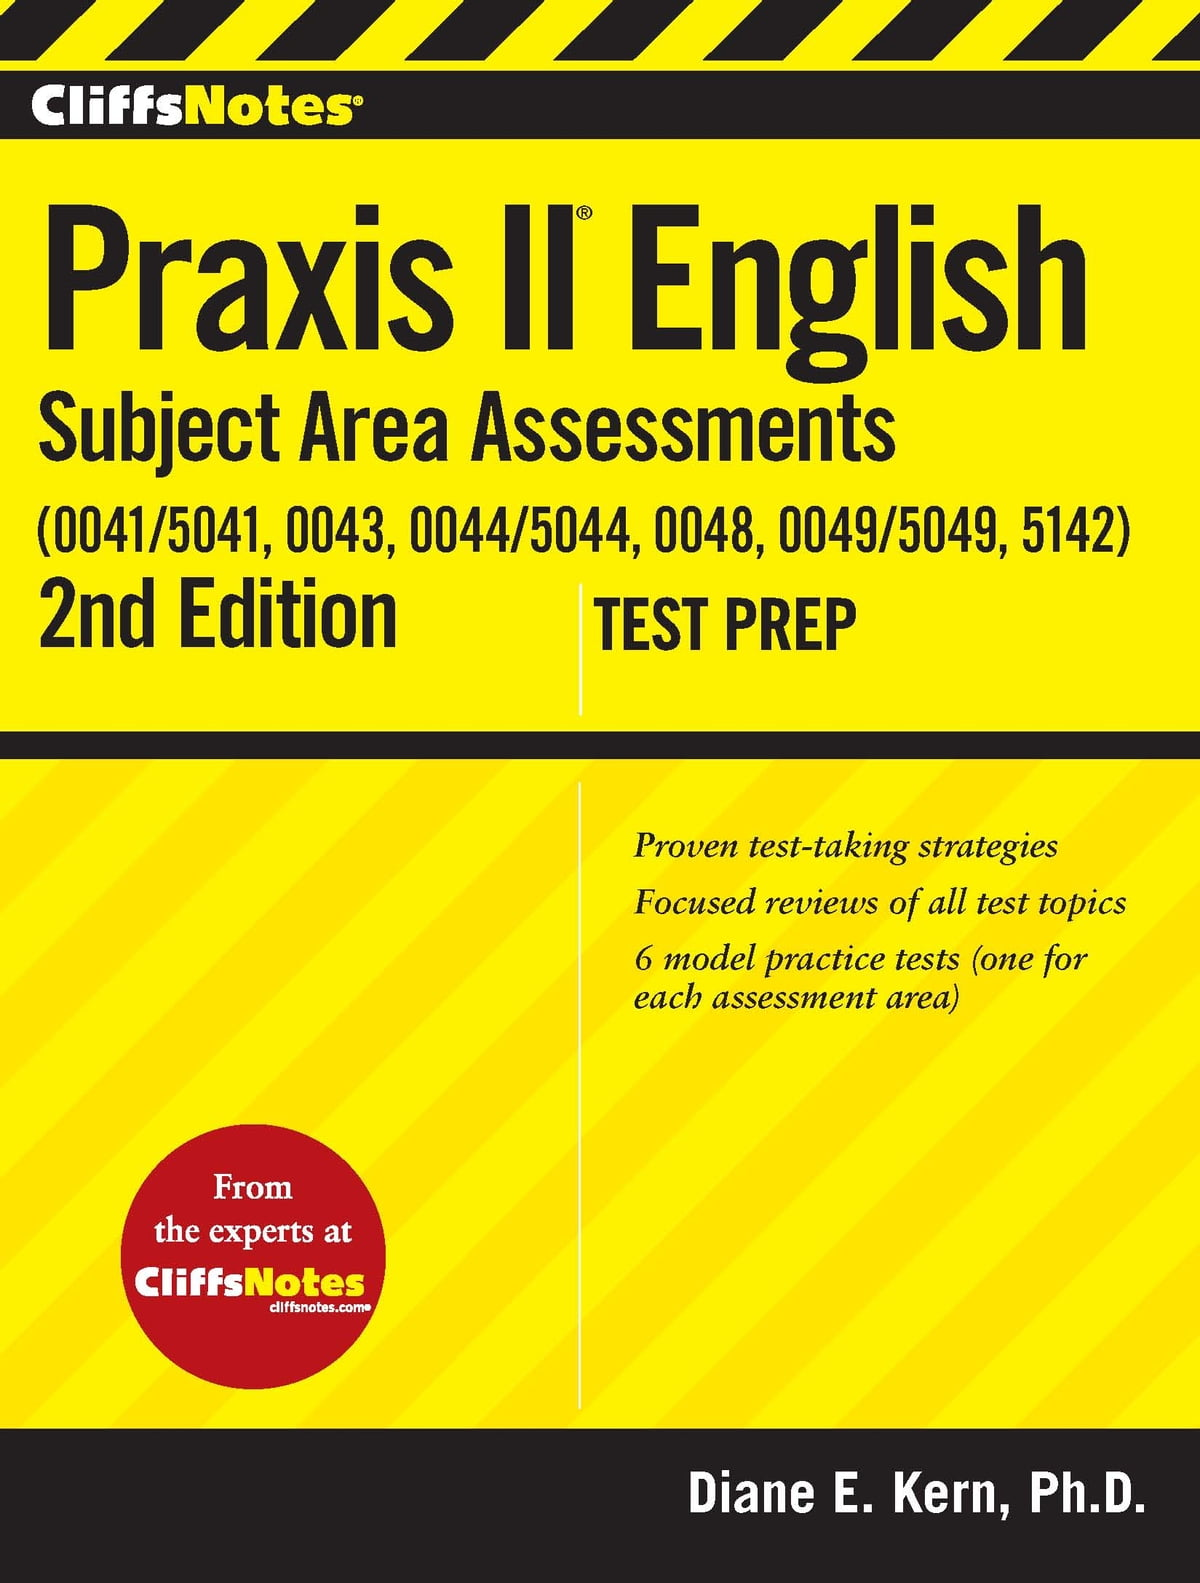 CliffsNotes Praxis II English Subject Area Assessments (0041/5041, 0043,  0044/5044, 0048, 0049/5049,5142) 2nd Edition eBook by Diane E Kern -  9780544183438 ...